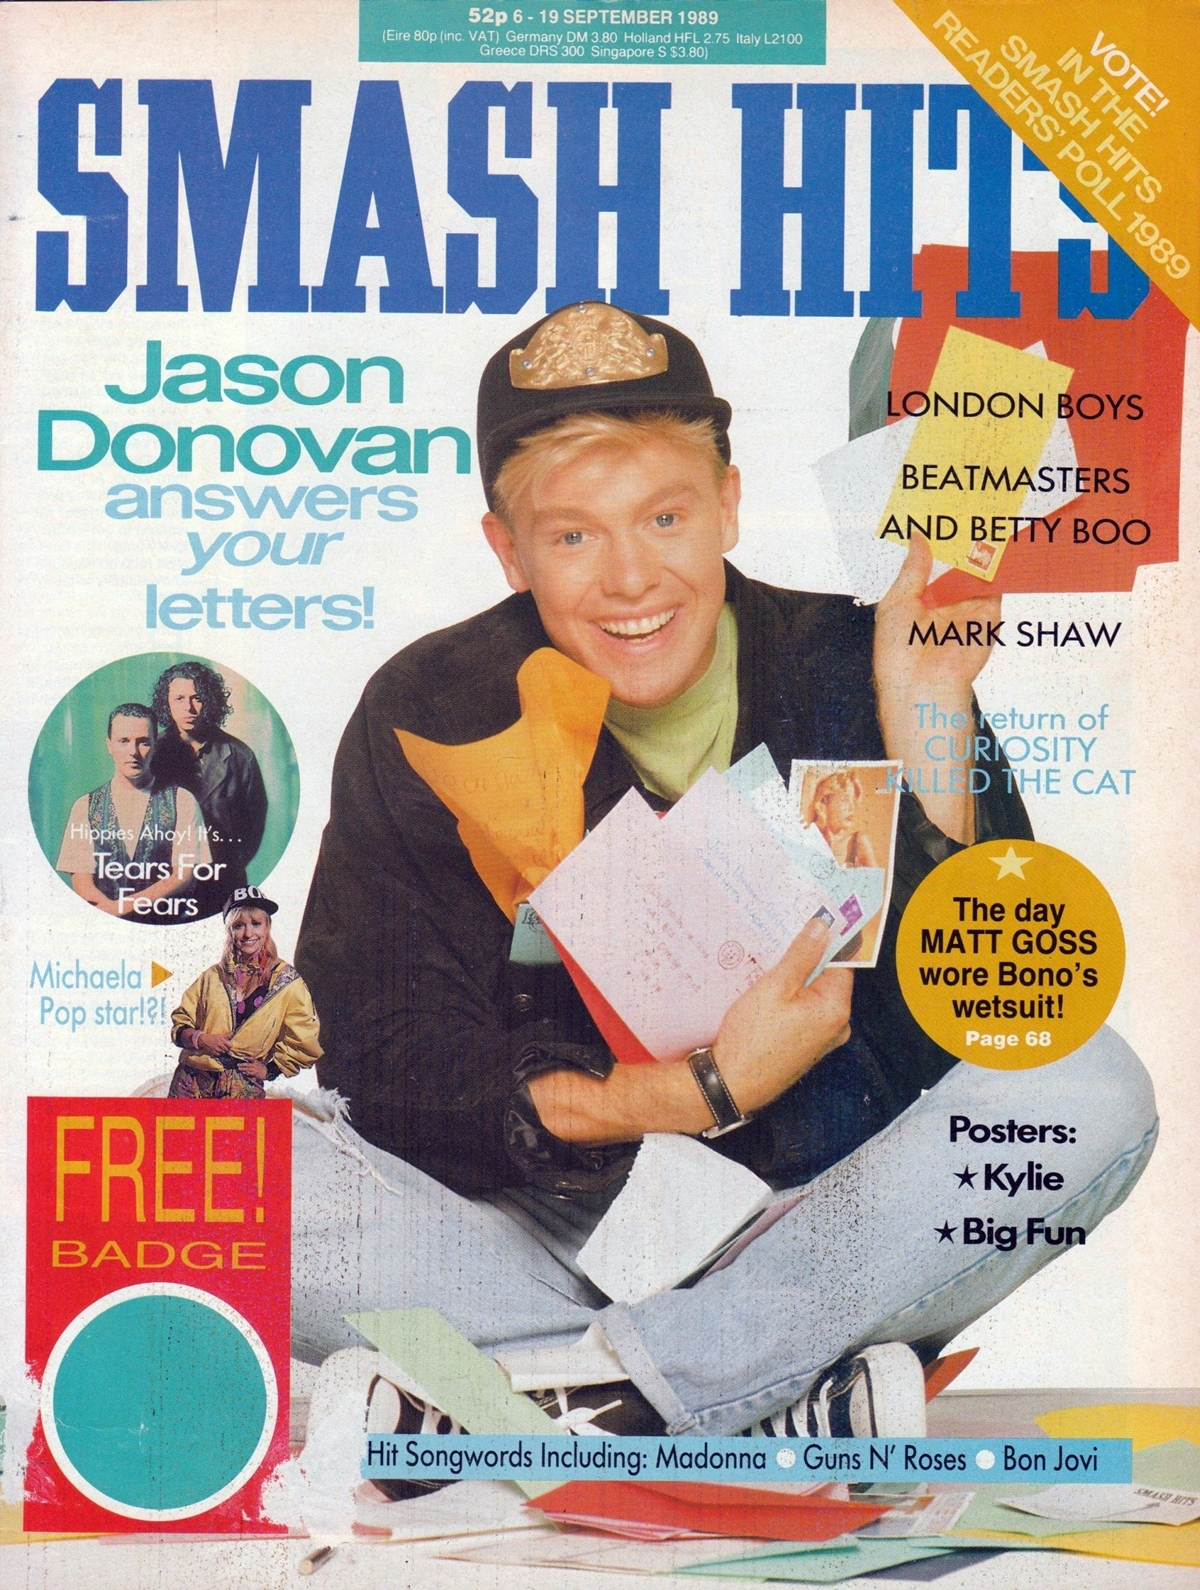 5 3 16 Smash Hits Covers That Will Take You Right Back To Your Youth